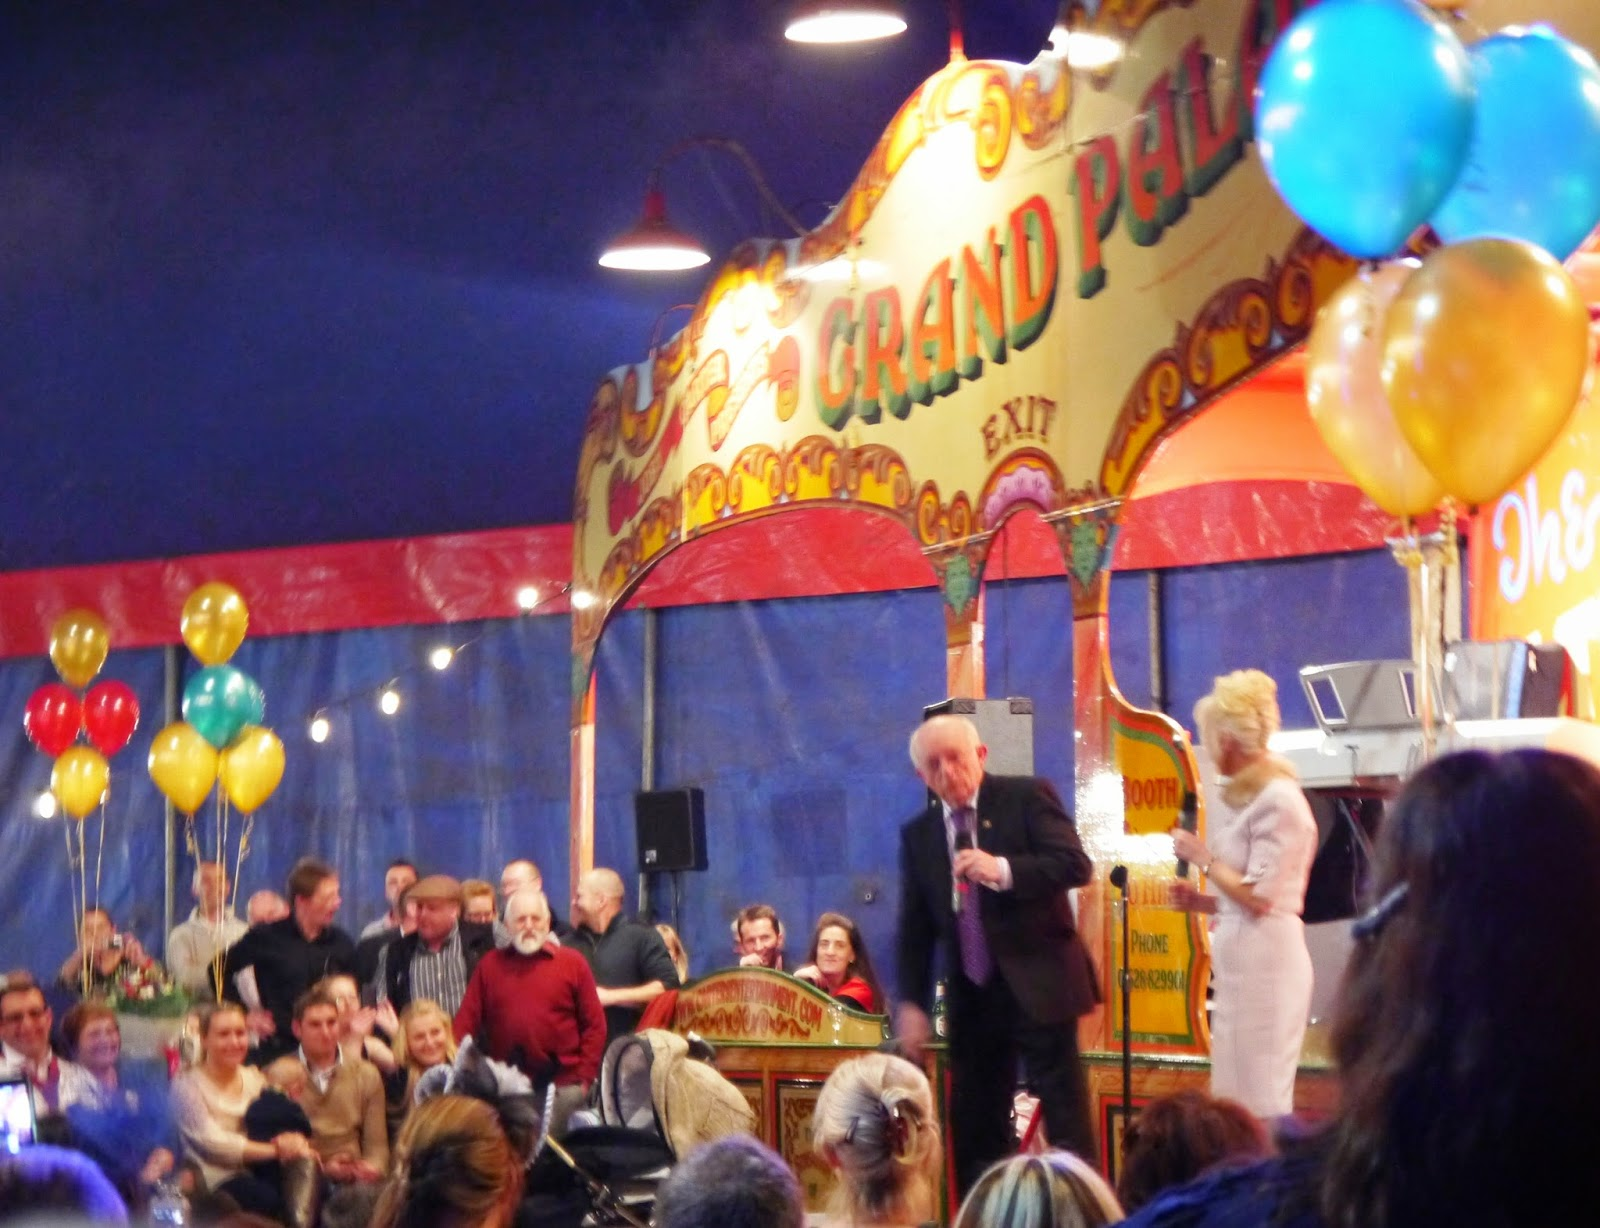 Carters Steam Fair Wedding - Paul Daniels and Debbie McGee